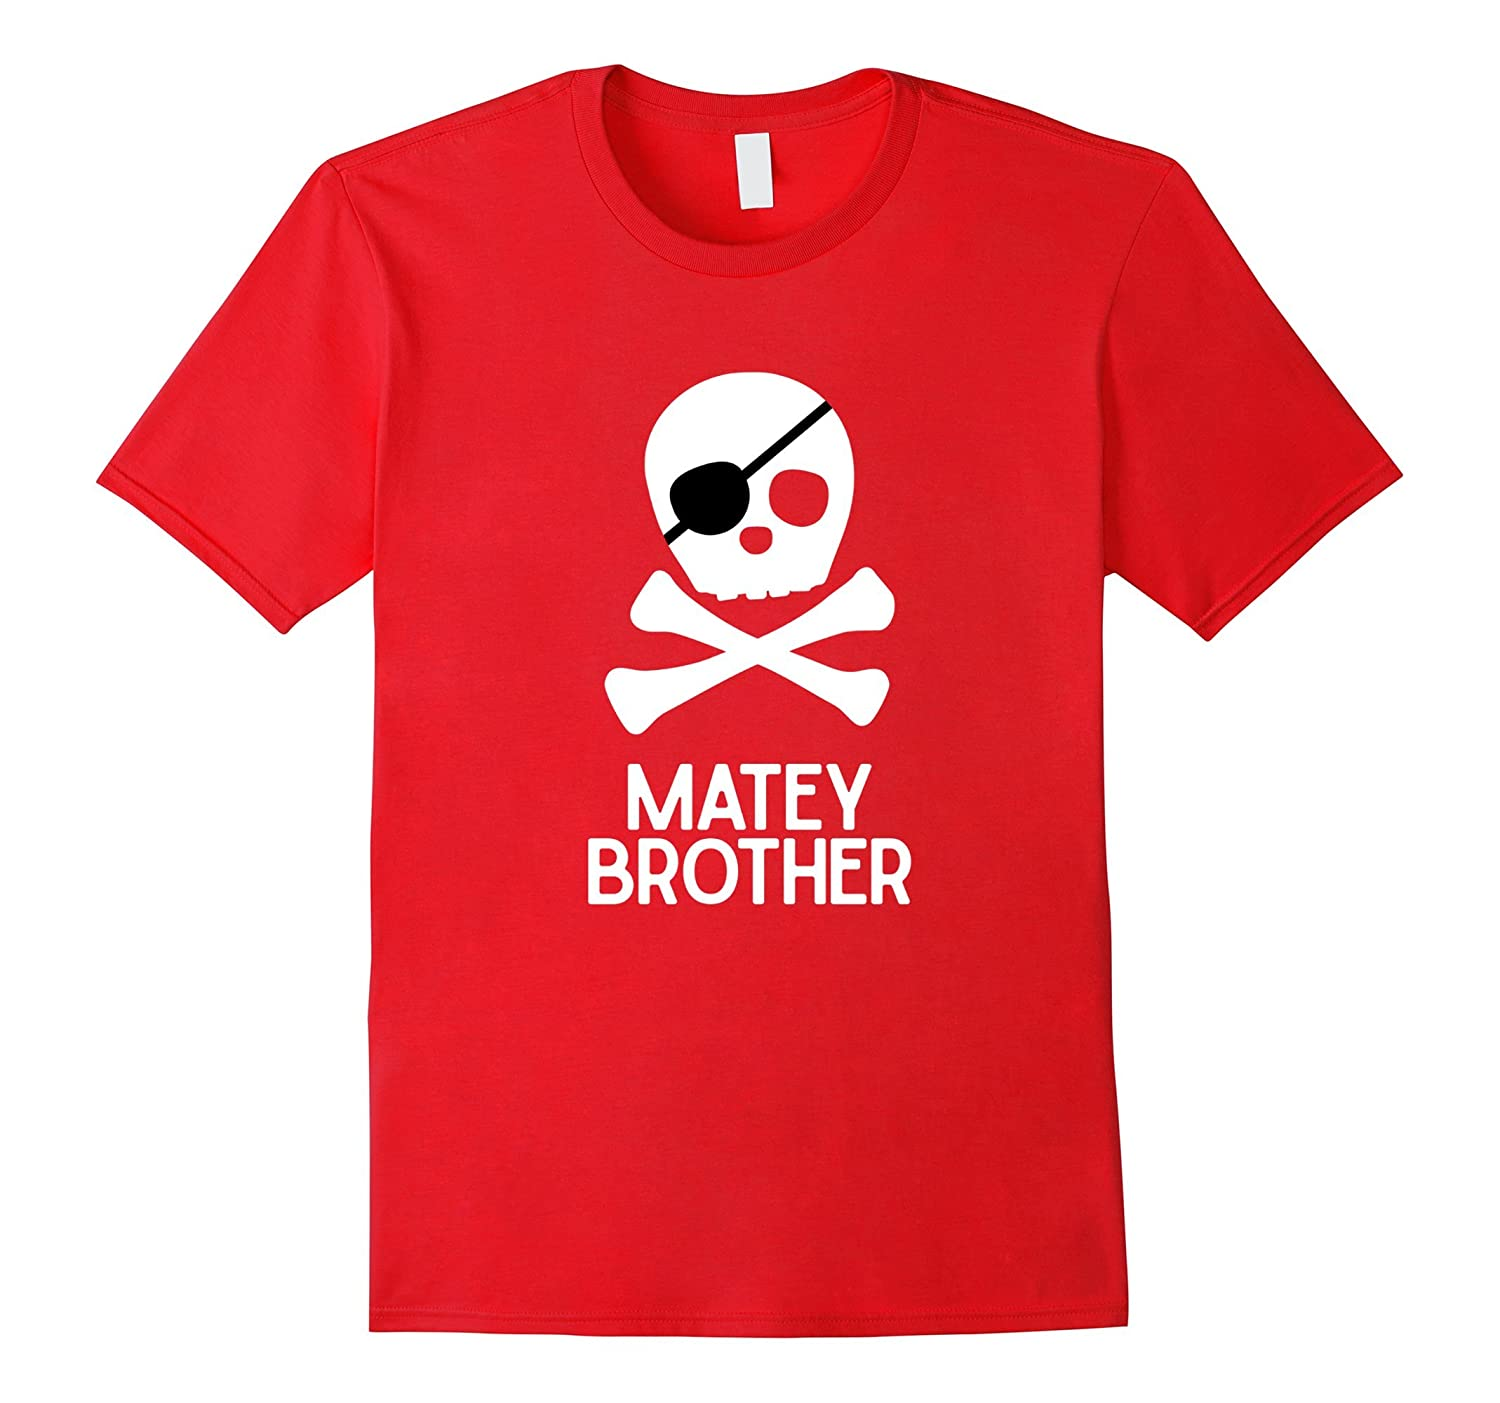 Matey Brother Pirate Shirt for Kids Family Pirate Shirts-Vaci